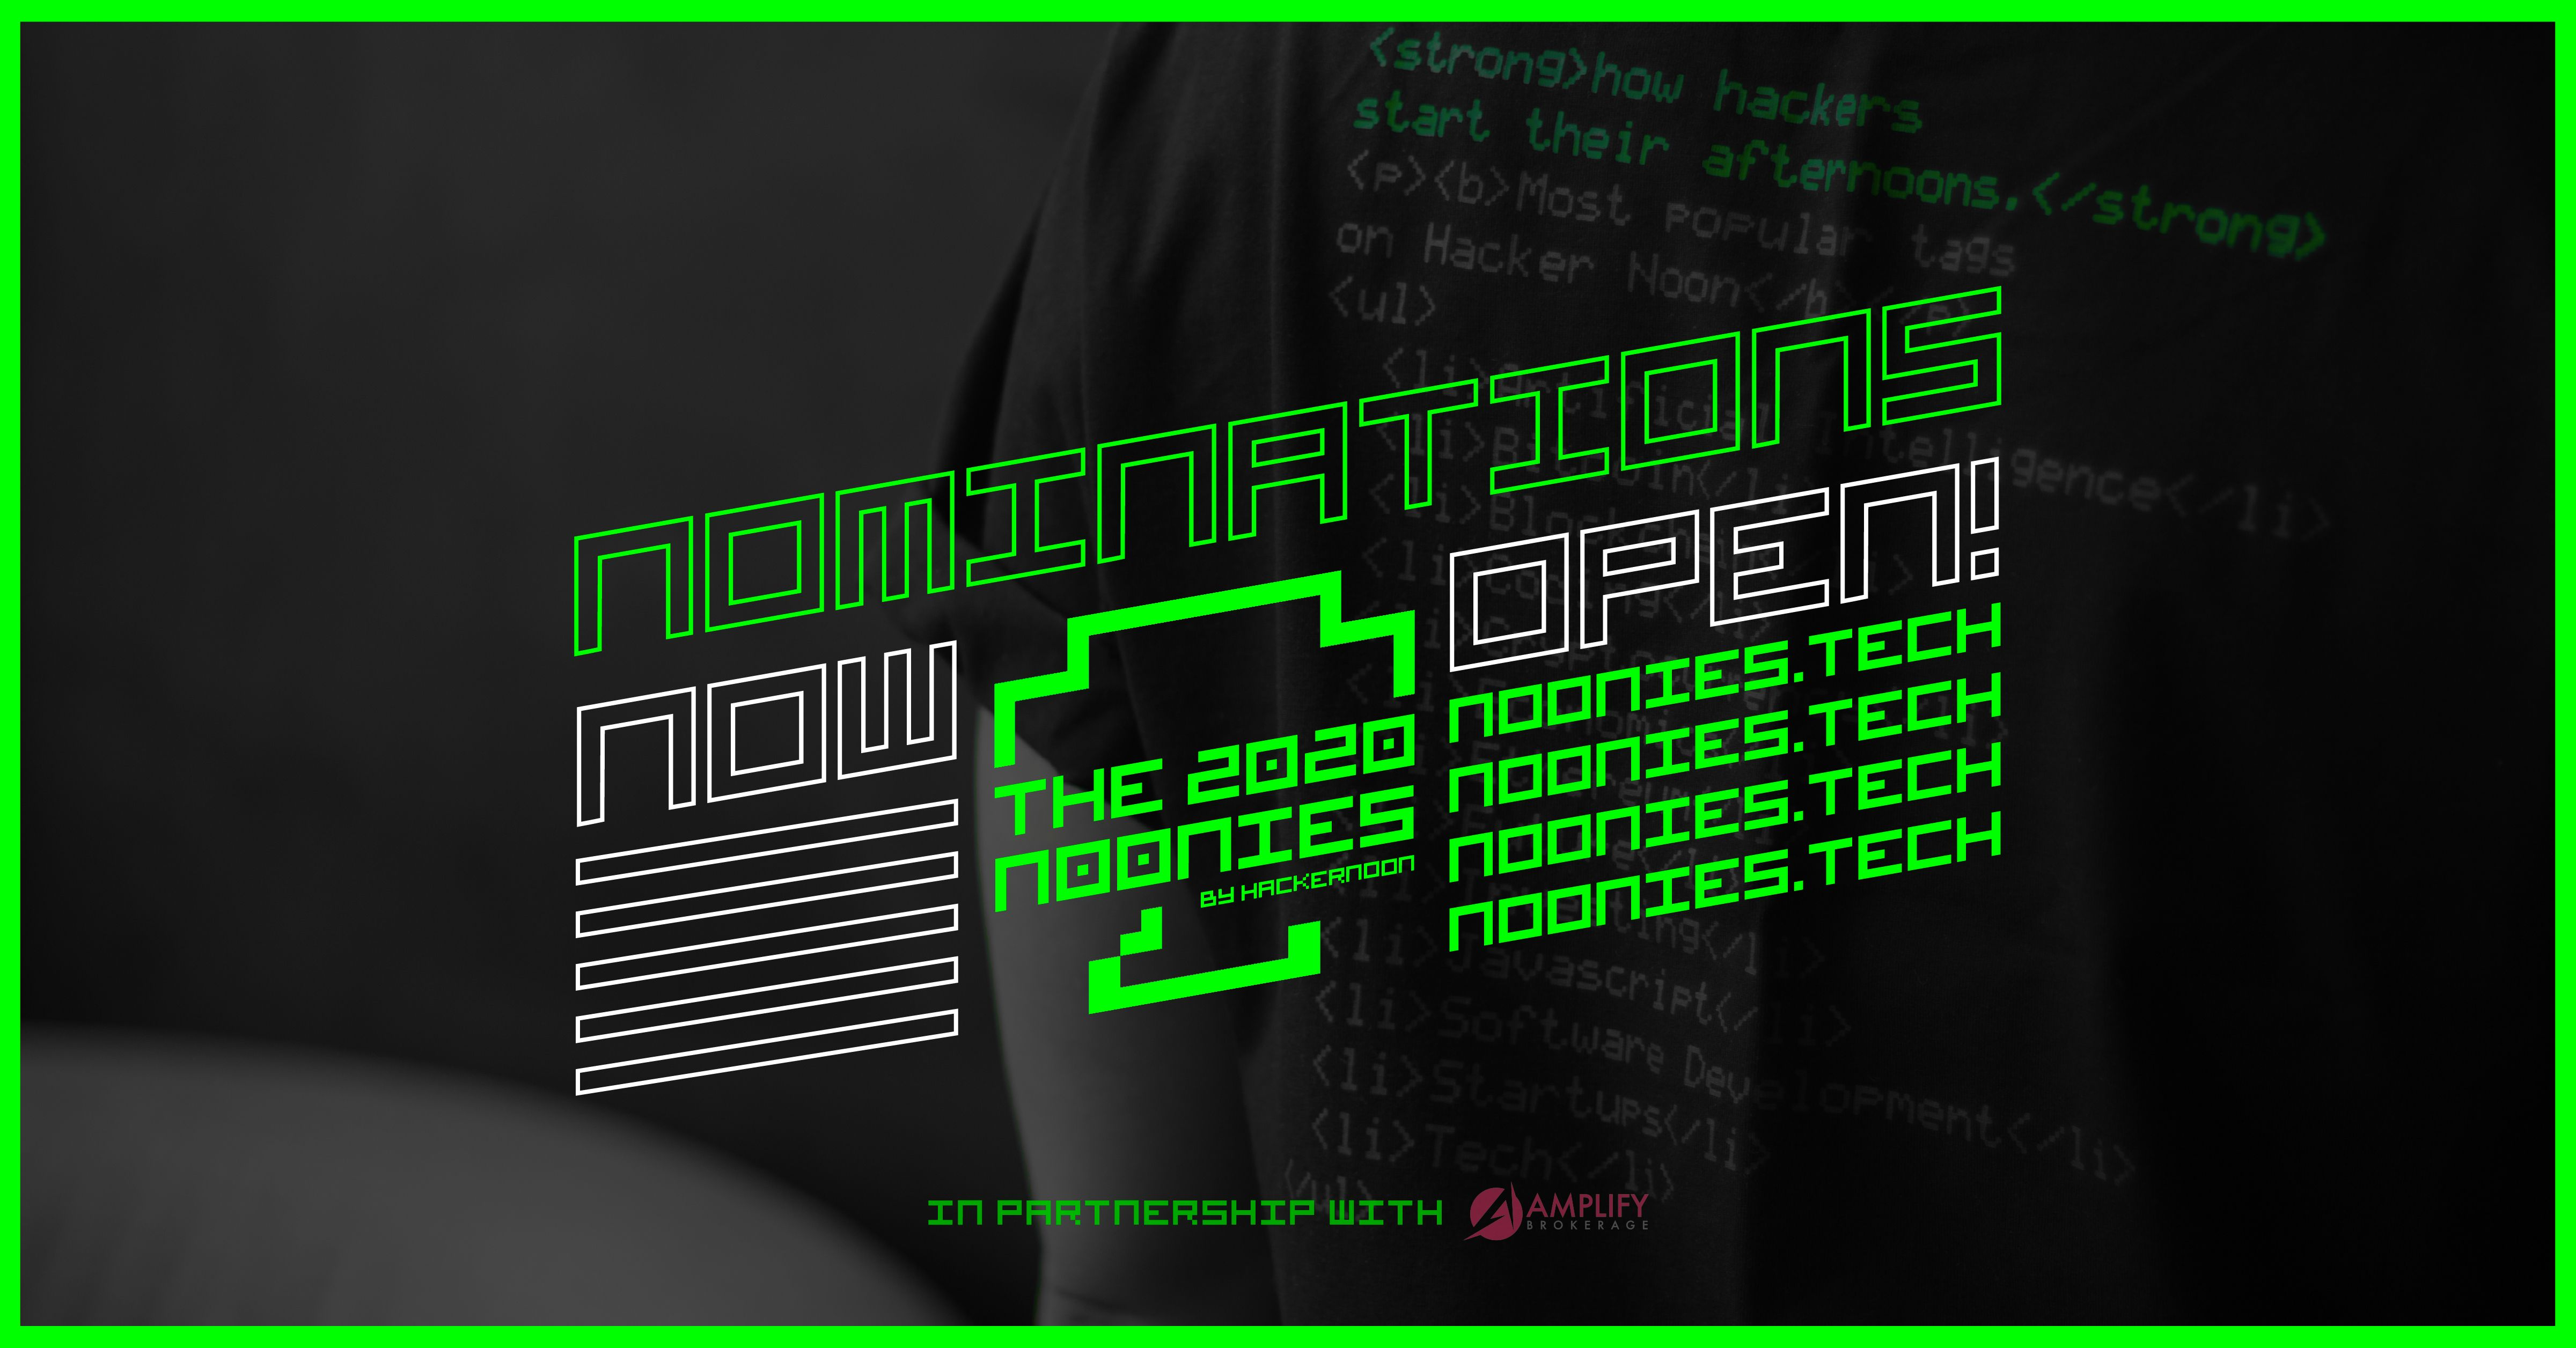 /2nd-annual-noonies-launches-today-with-public-call-for-noms200-award-titles-ph2y3u1r feature image